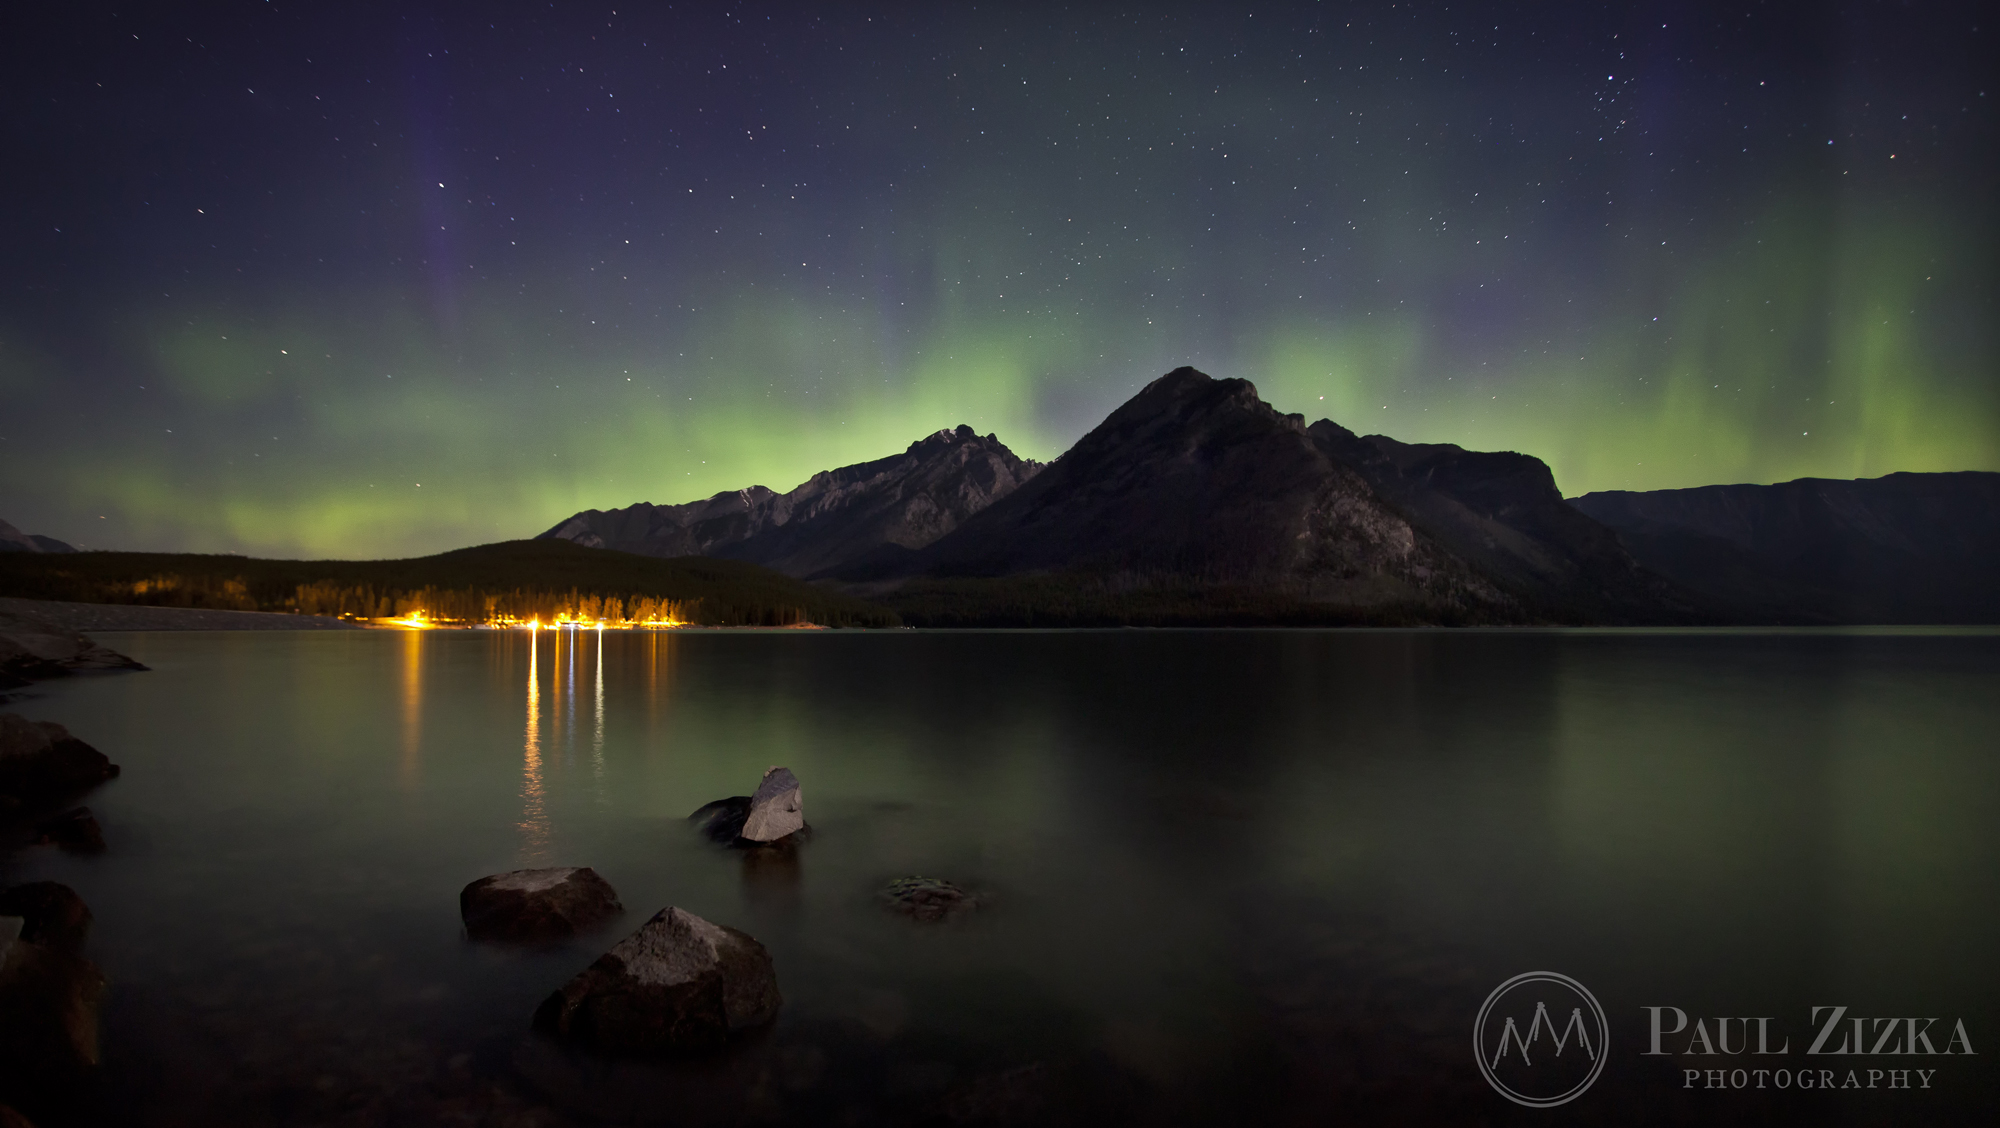 Aurora over Banff National Park, Canada